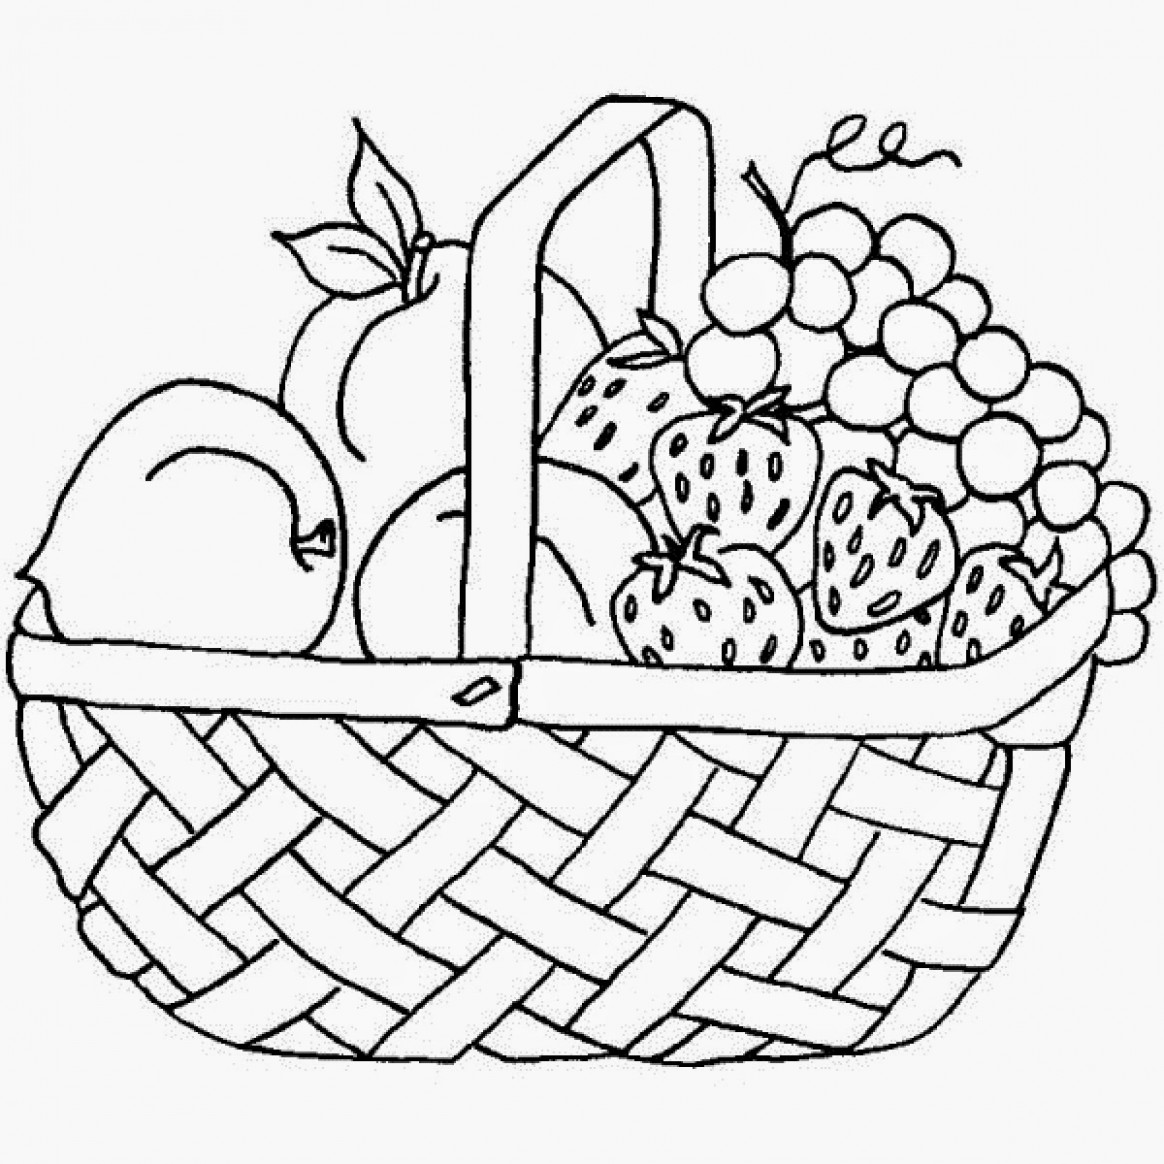 how to draw fruit how to draw fruit basic drawing fruits drawing drawings fruit to draw how